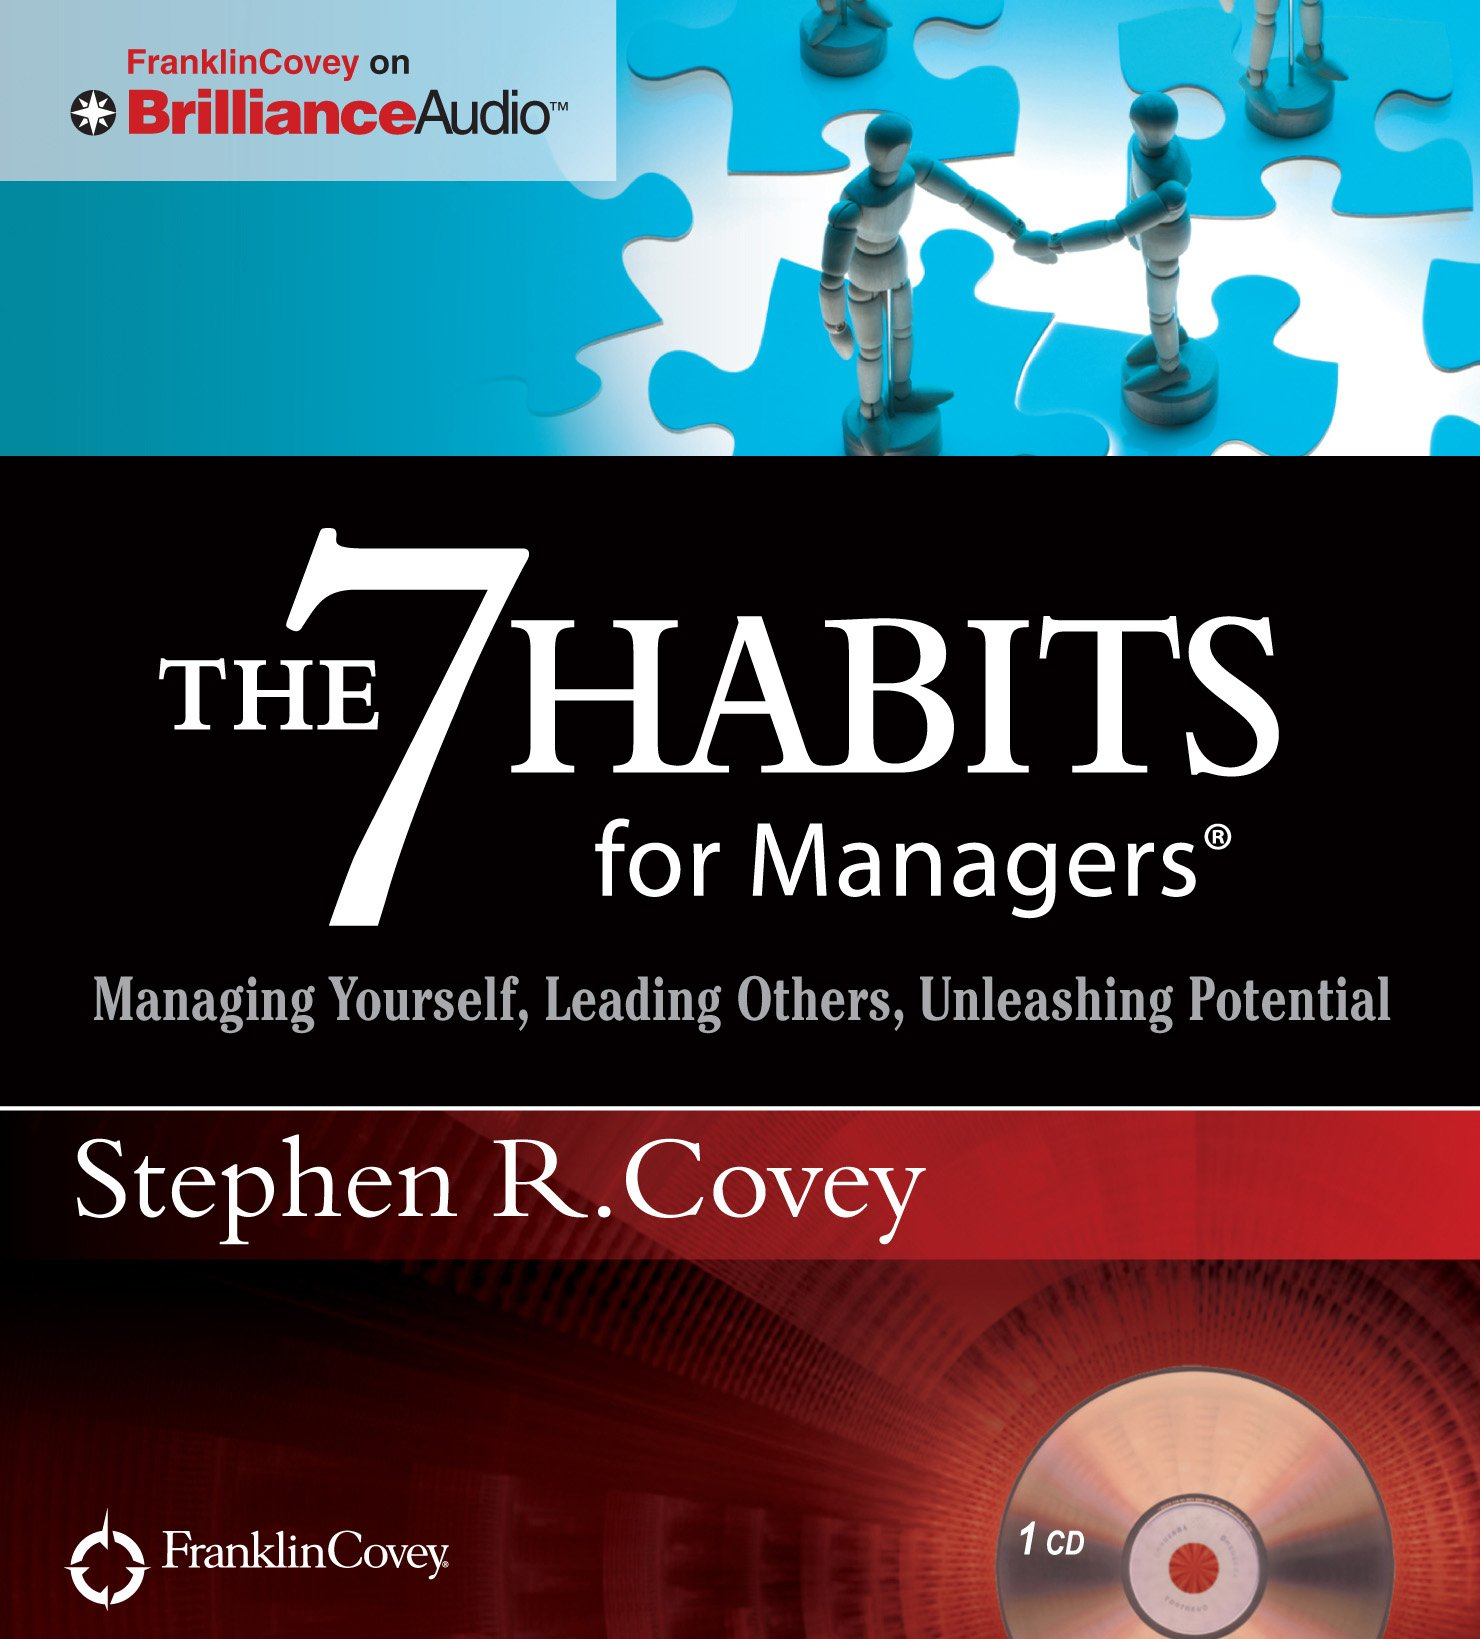 stephen covey developing a personal mission statement Franklin covey on brilliance audio presents how to develop your family mission statement by stephen r covey, performed by stephen r covey to see and hear more go to: wwwsnaptolistenmobi.